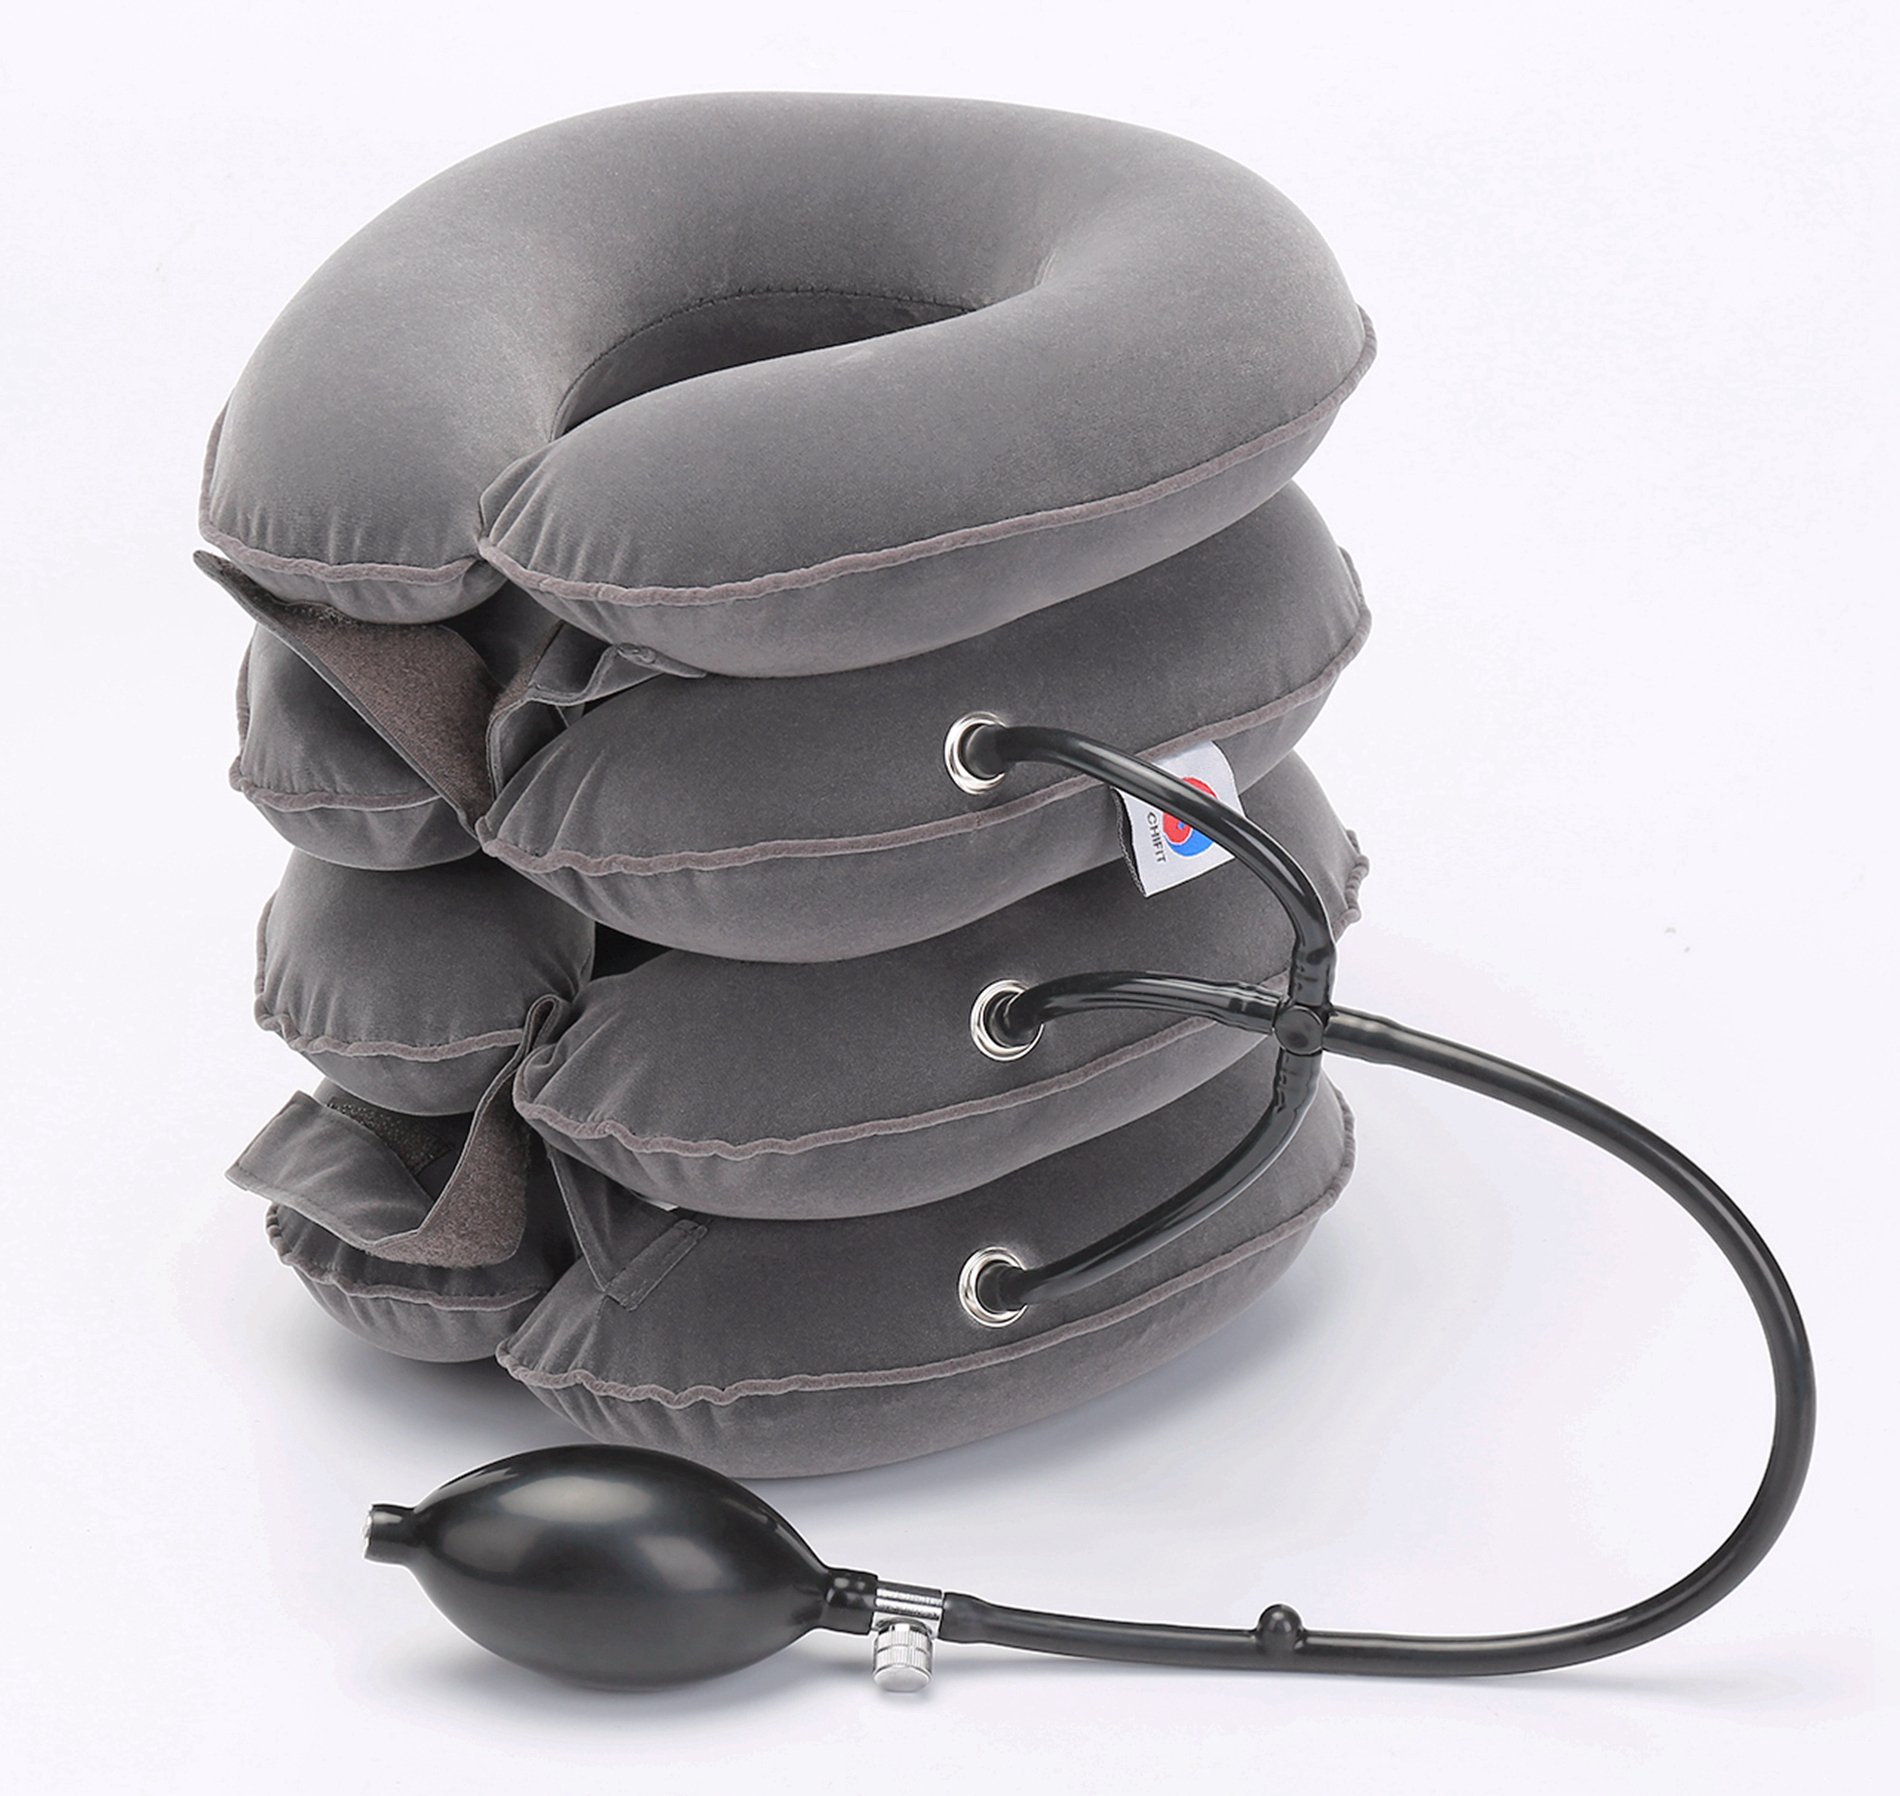 ChiFit Neck Traction - 4Layer Cervical Neck Traction Device - Neck Massager & Collar - Neck & Shoulder Pain Relief - Cervical Collar for Travel/Home Improved Spine Alignment